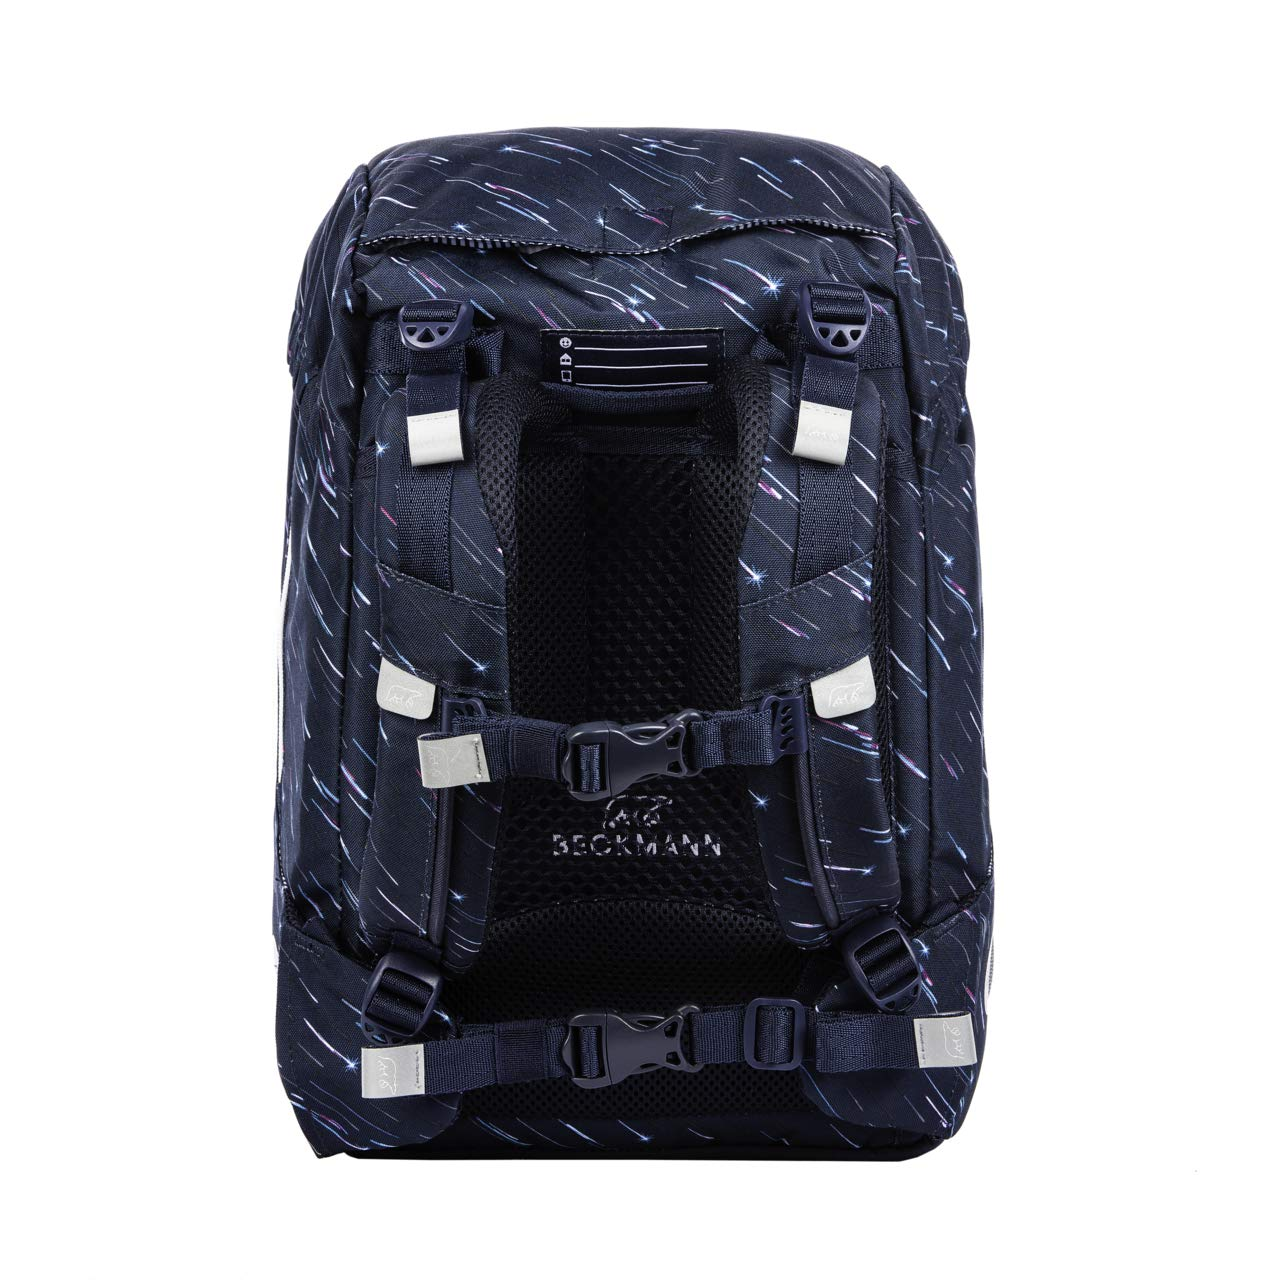 a3edcc385008 Patterned - 110-space 1191-space Beckmann of Norway School Backpack ...